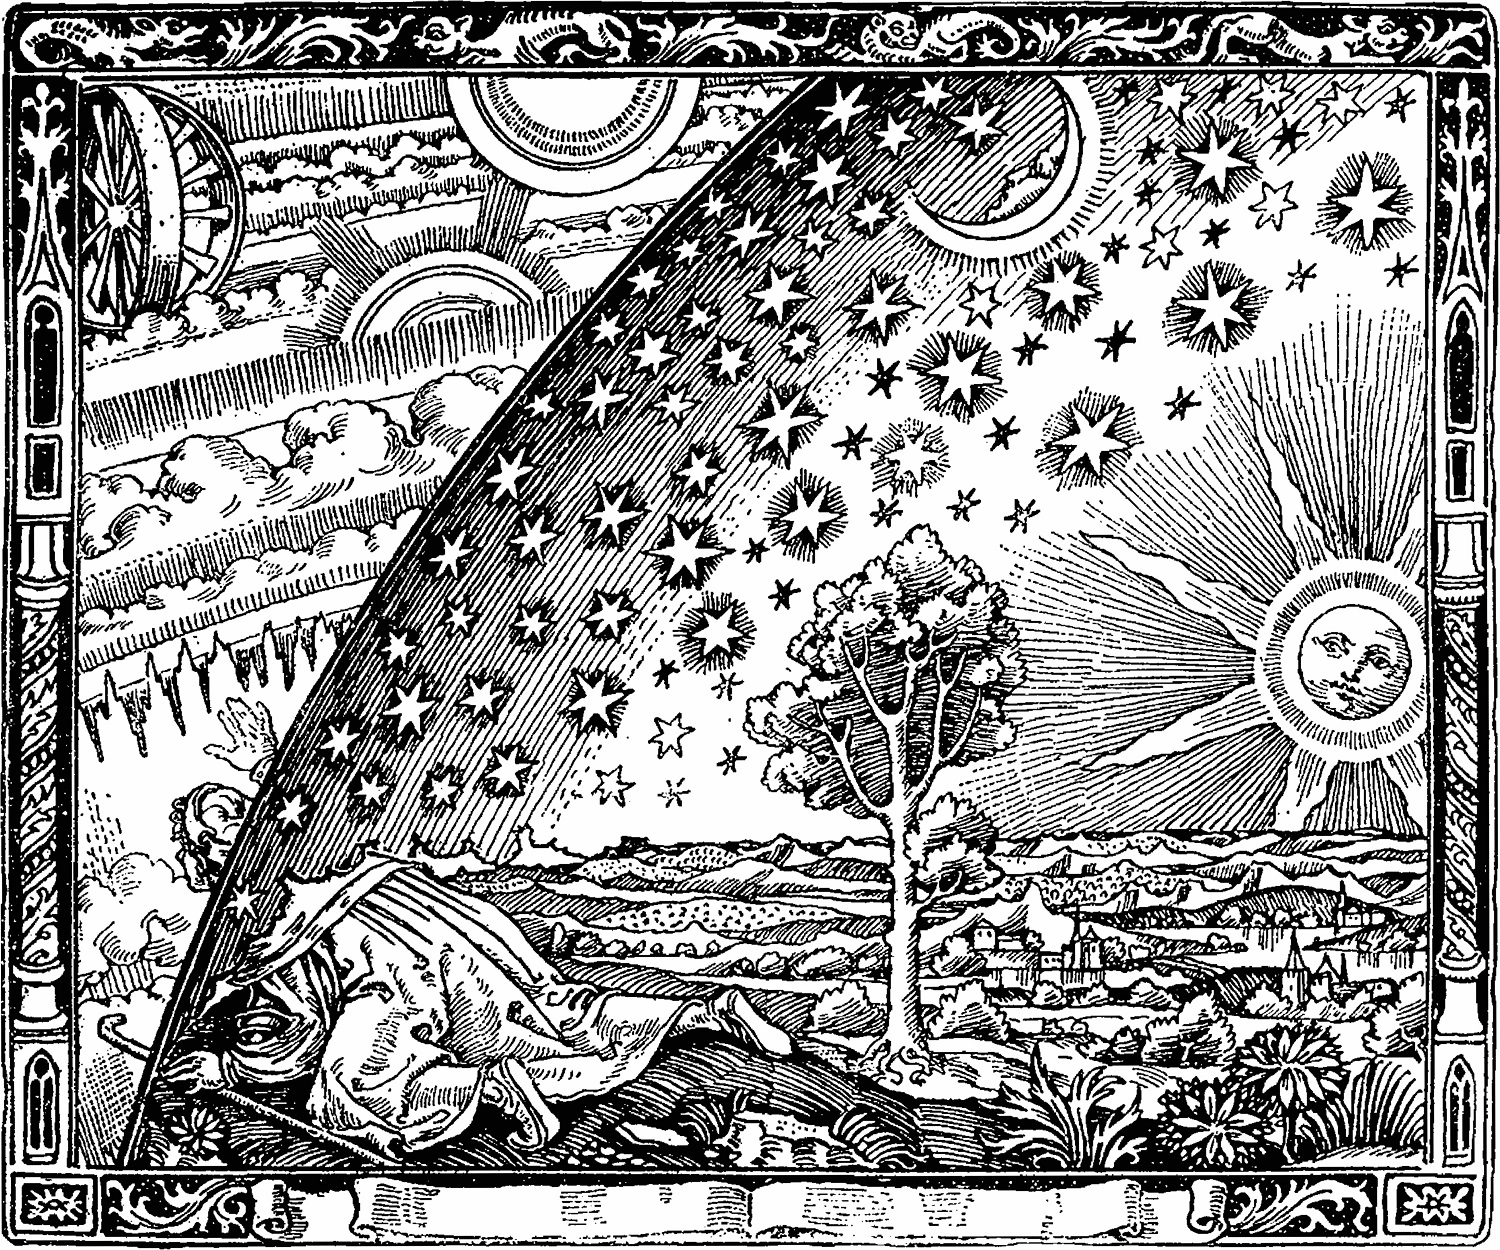 Flammarion cosmos engraving 19th century